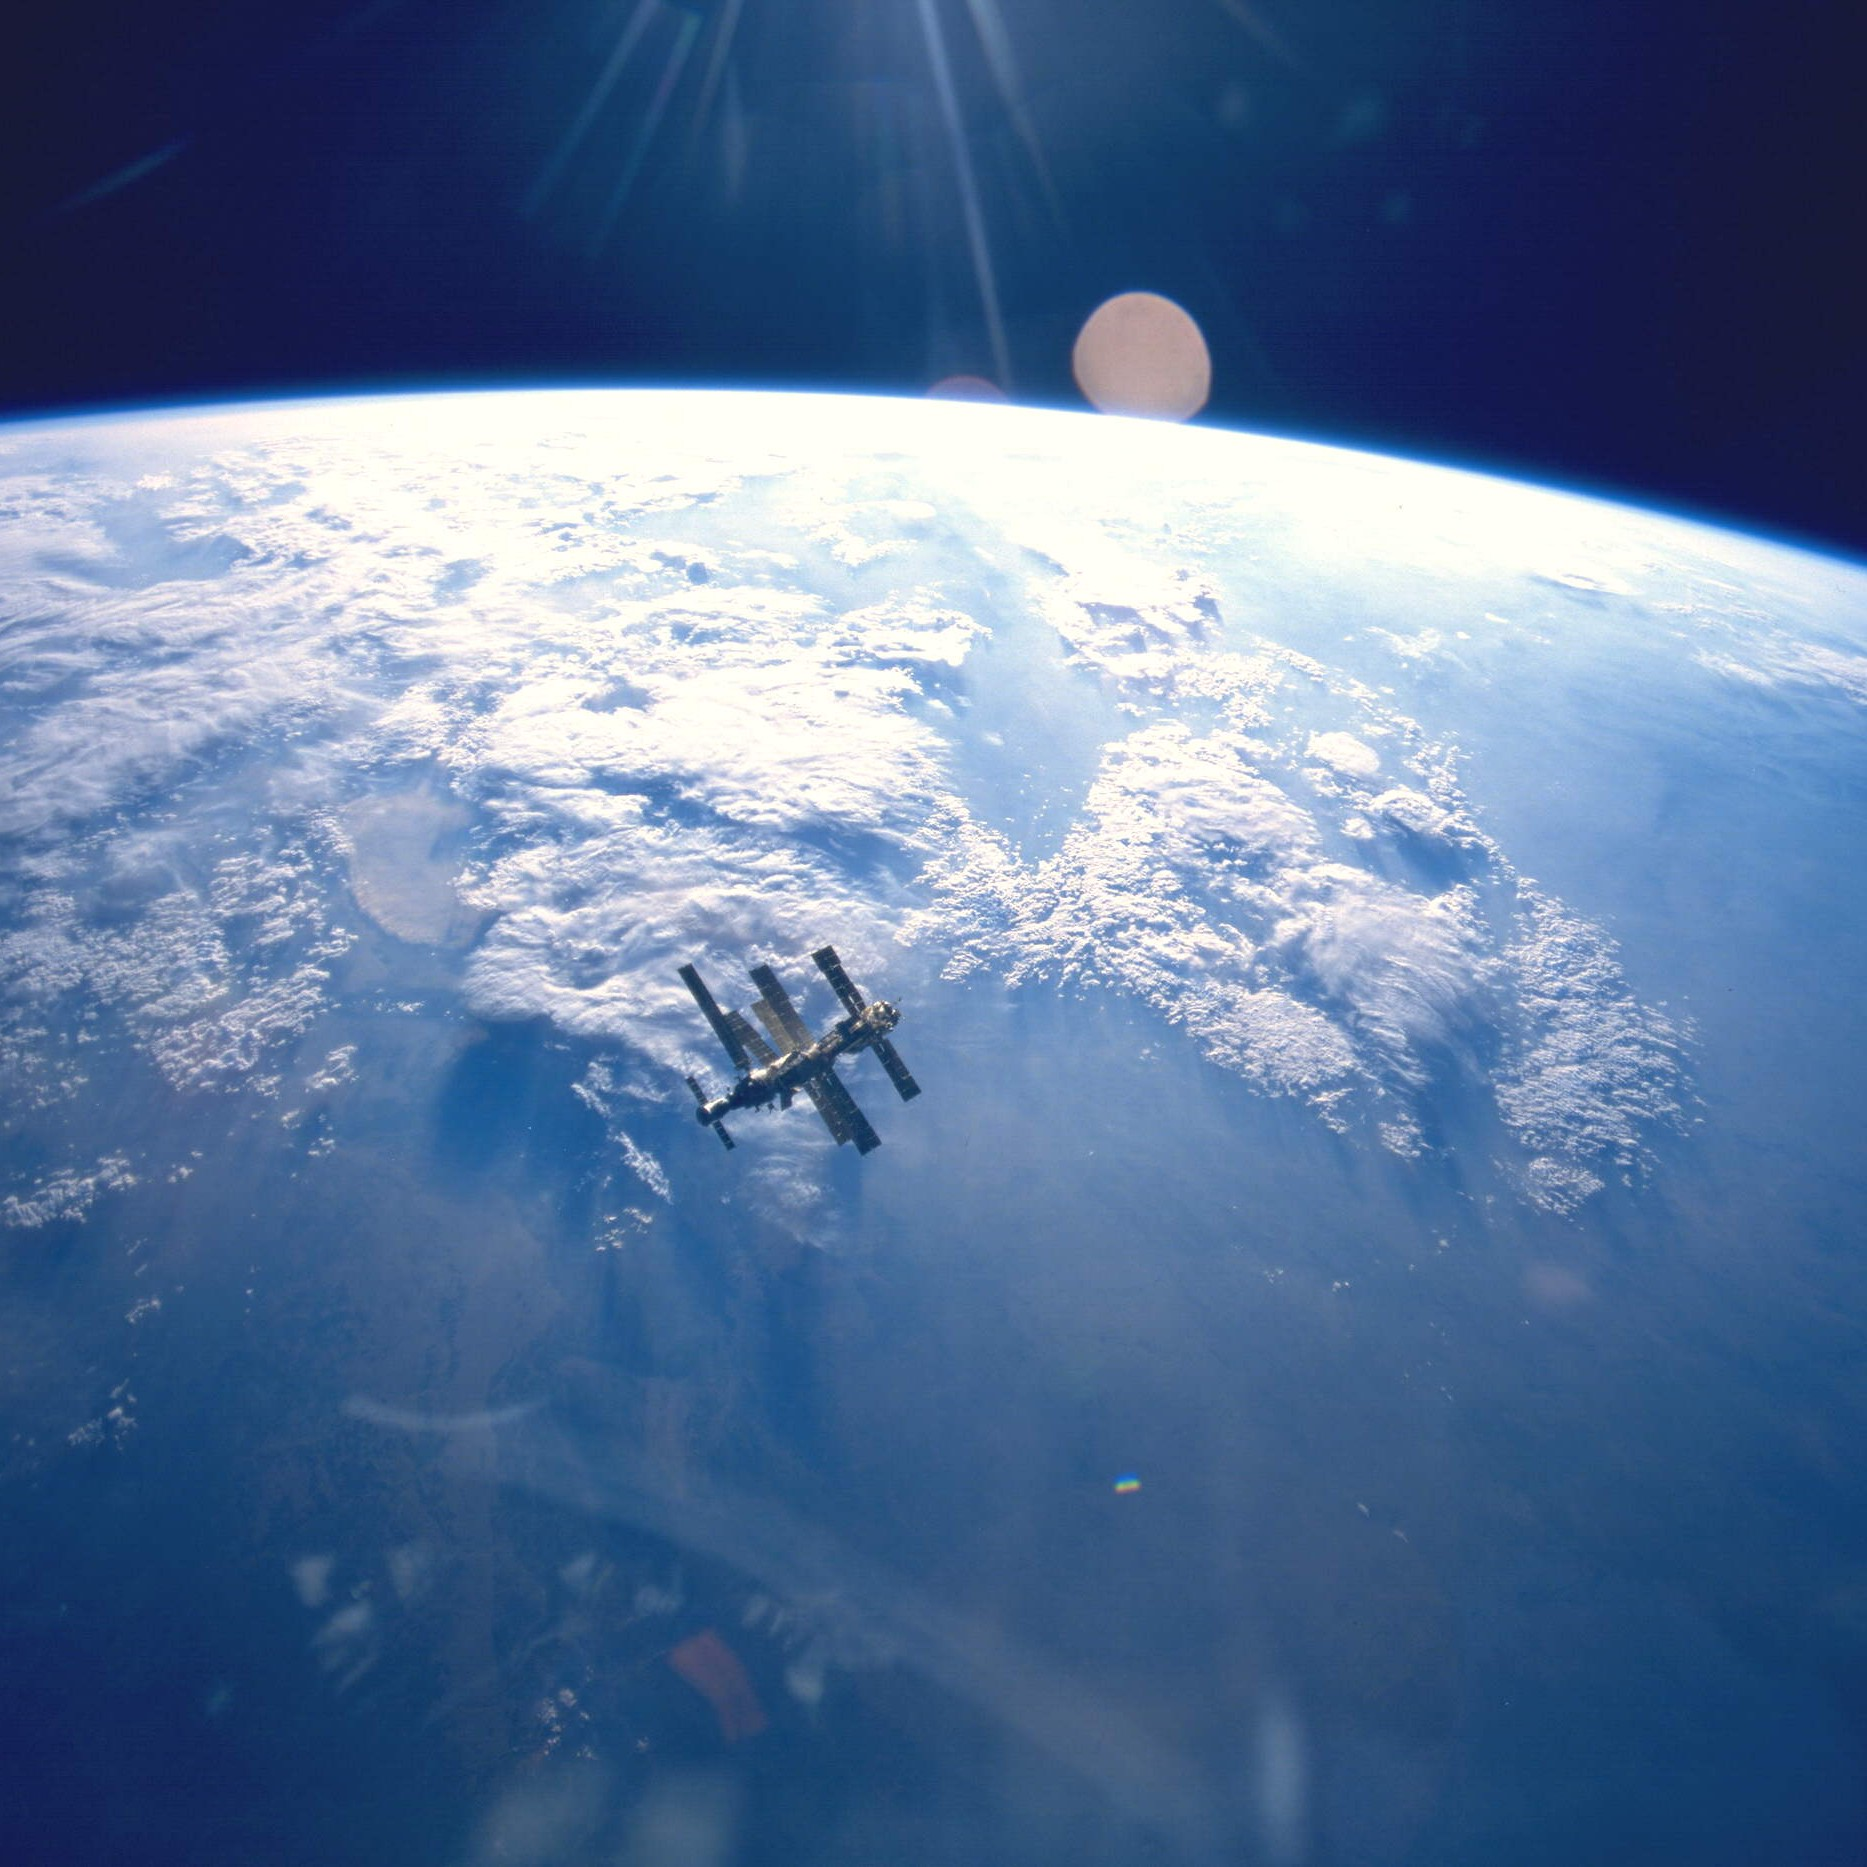 the mir space station was a marvel a clusterfuck and an underdog